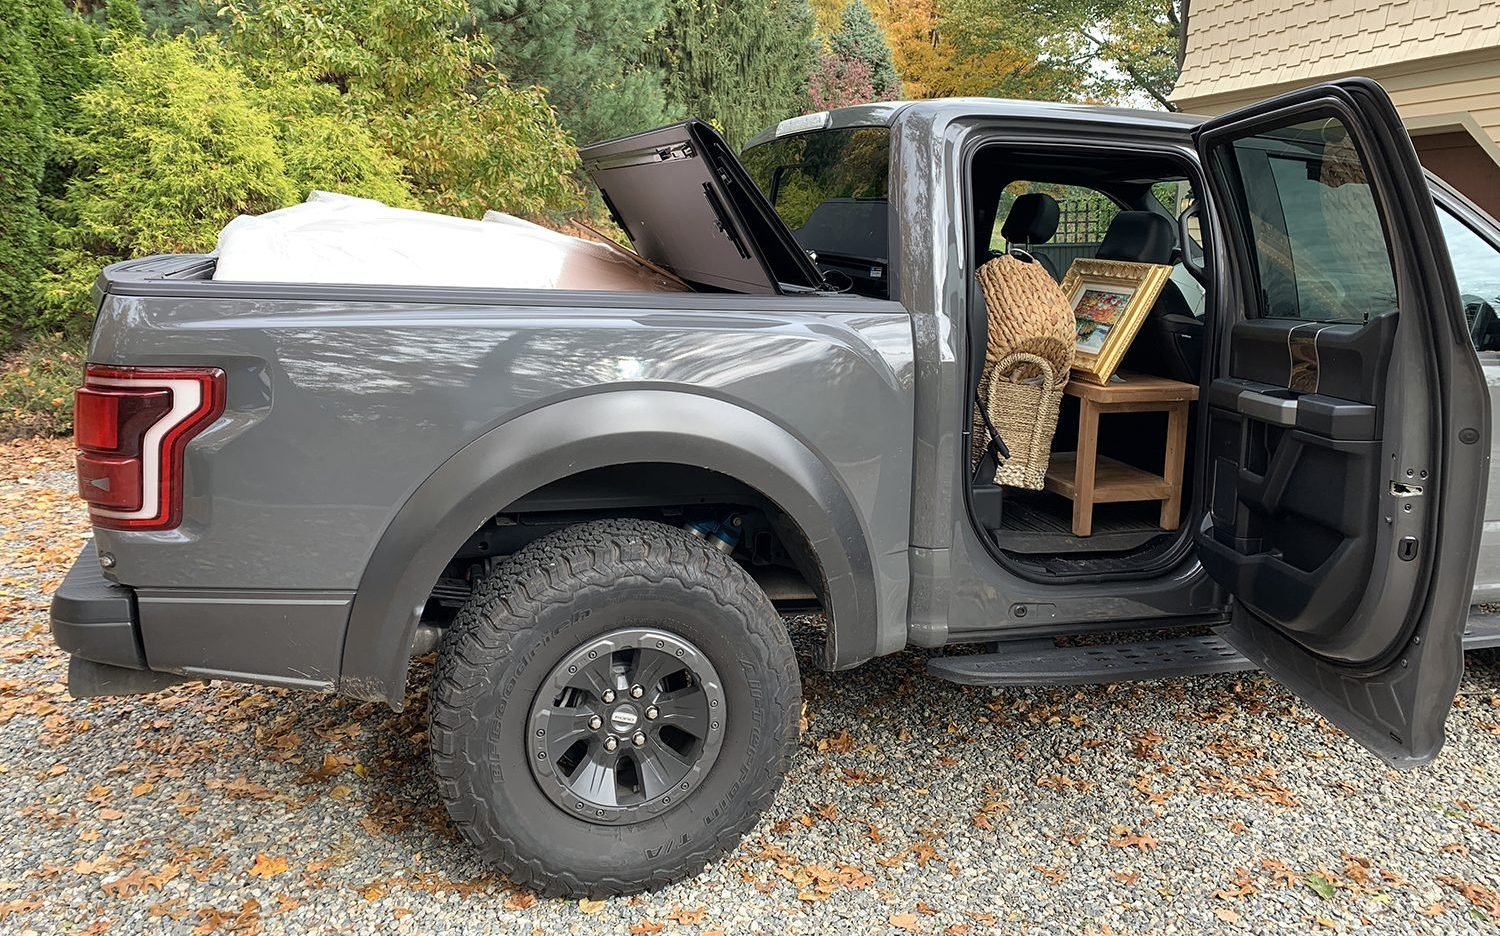 Truck packed with treasures sourced from the Brimfield Antique Show